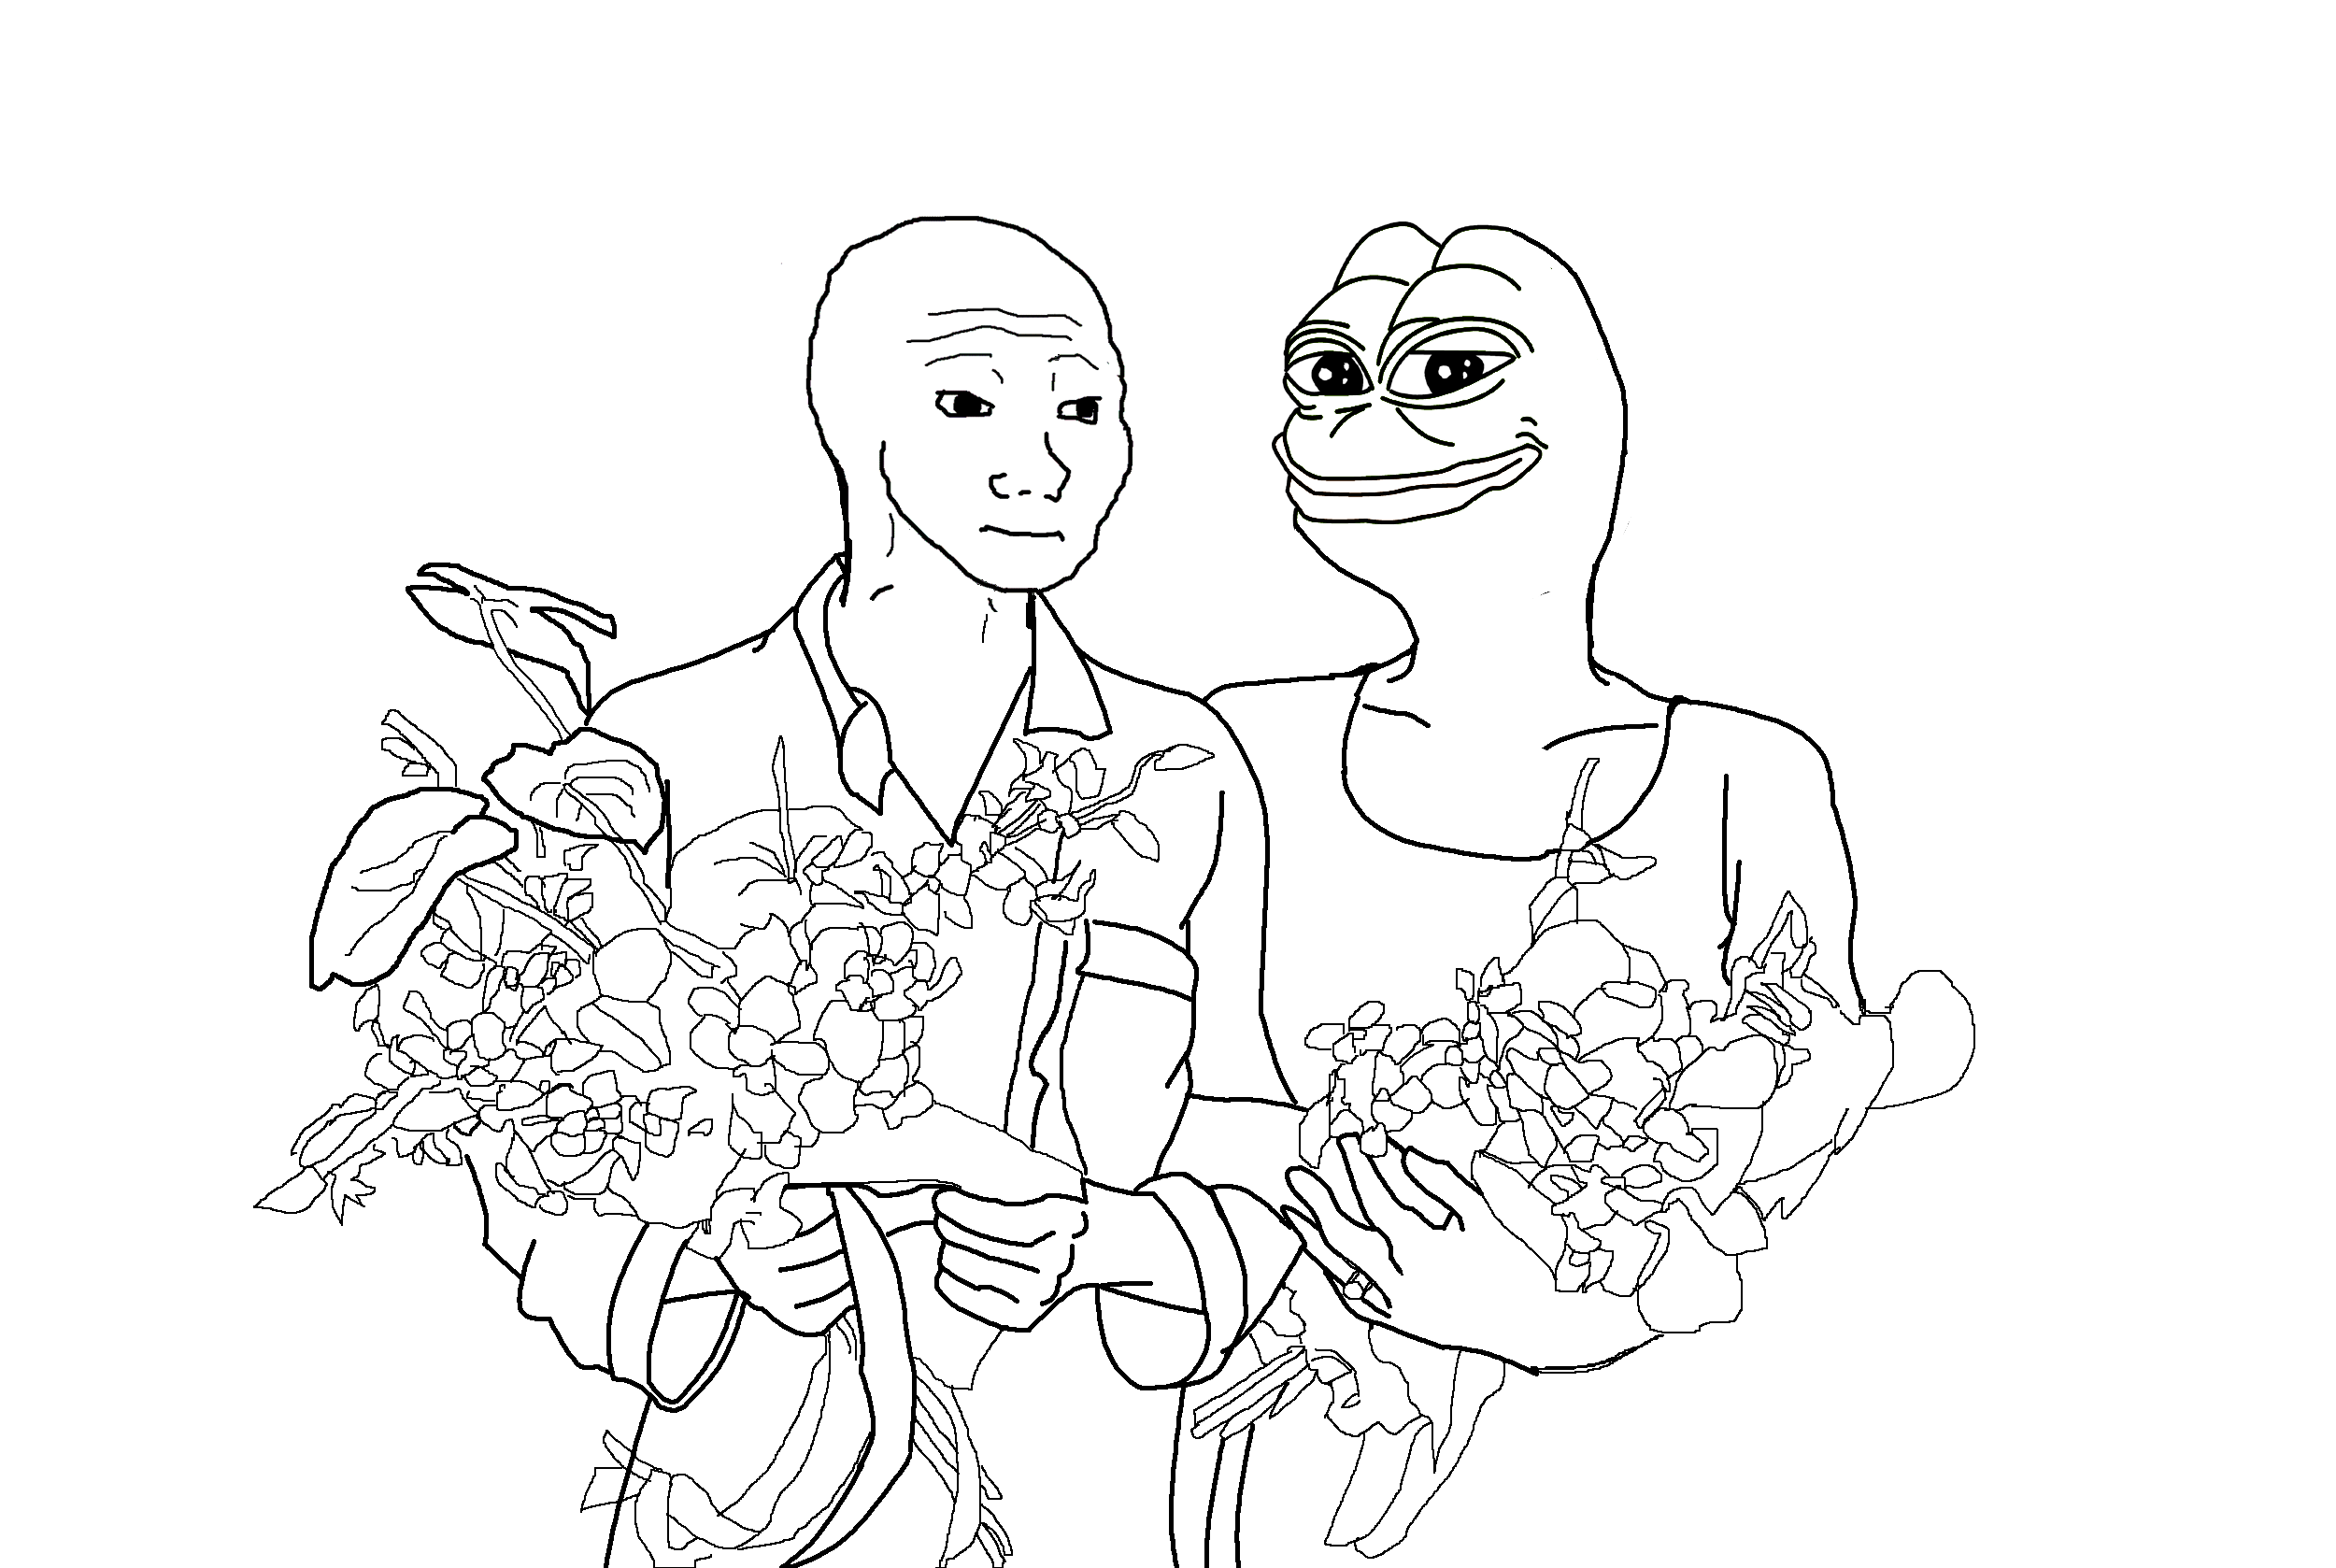 Pepe Meme Coloring Page Coloring Pages Coloring Pages Frog